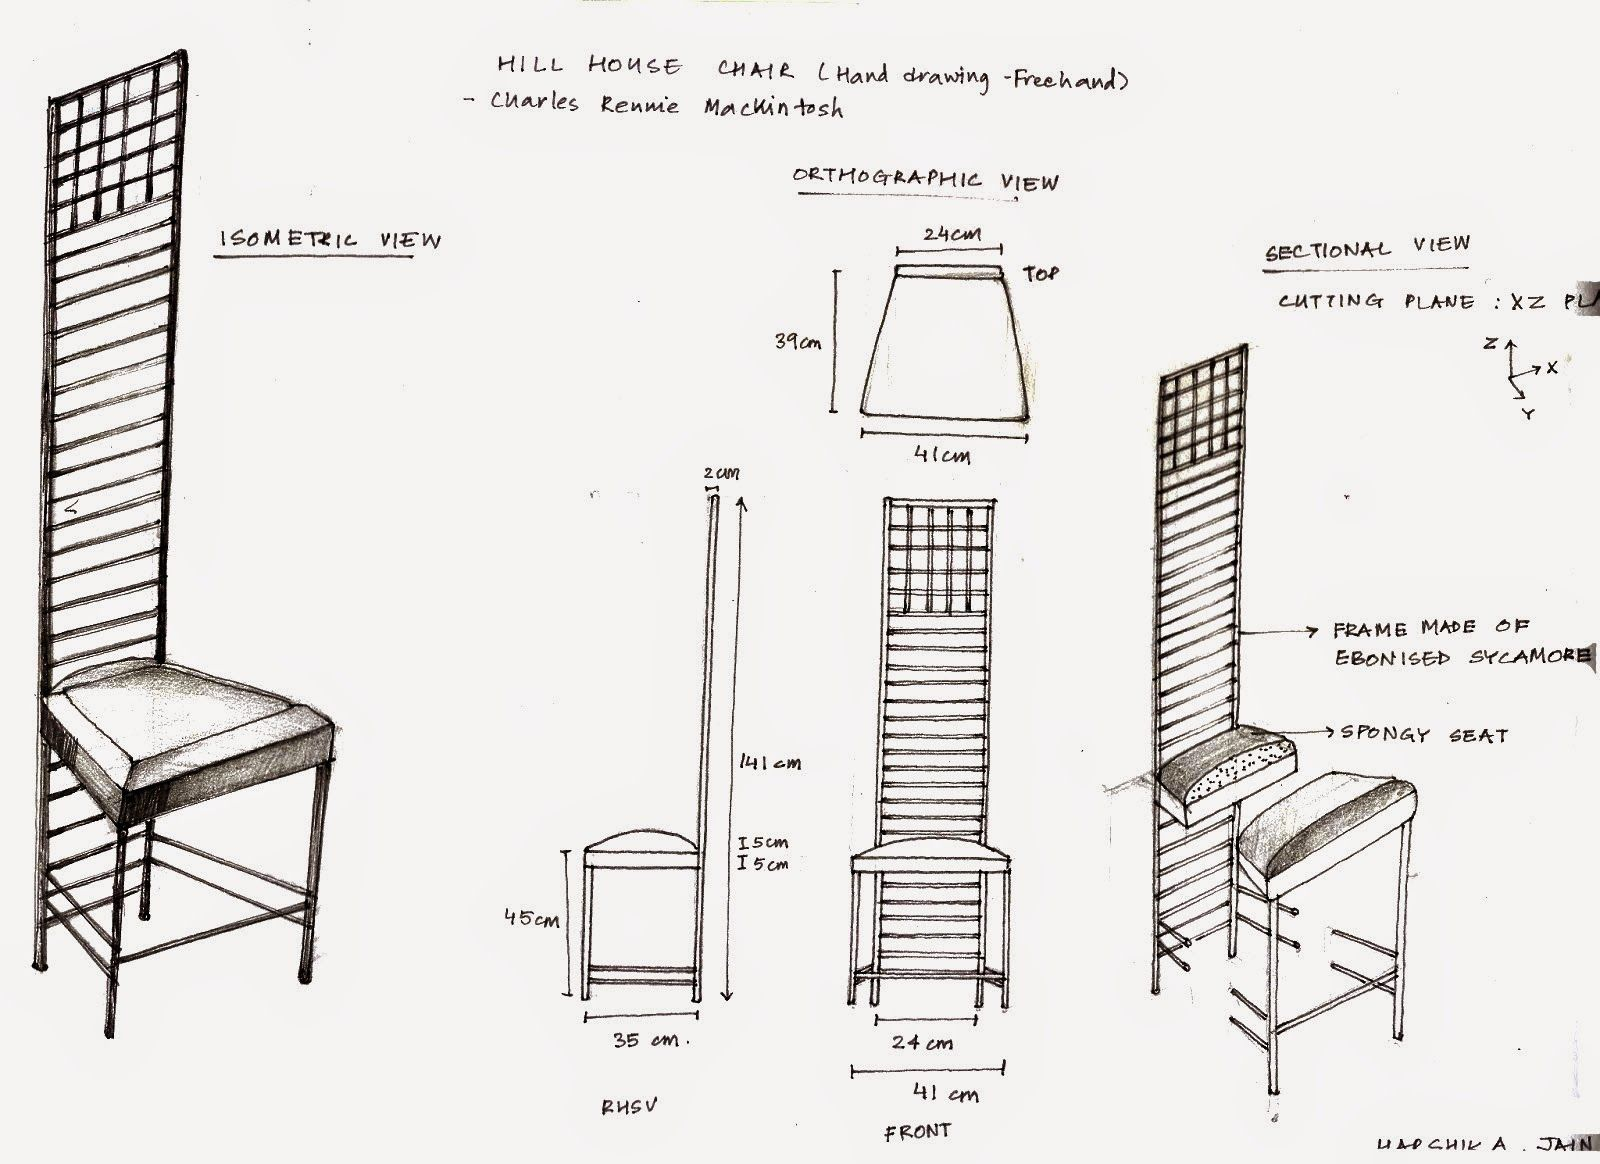 Crypt Decrypt Hill House Chair Sketch Orthographic